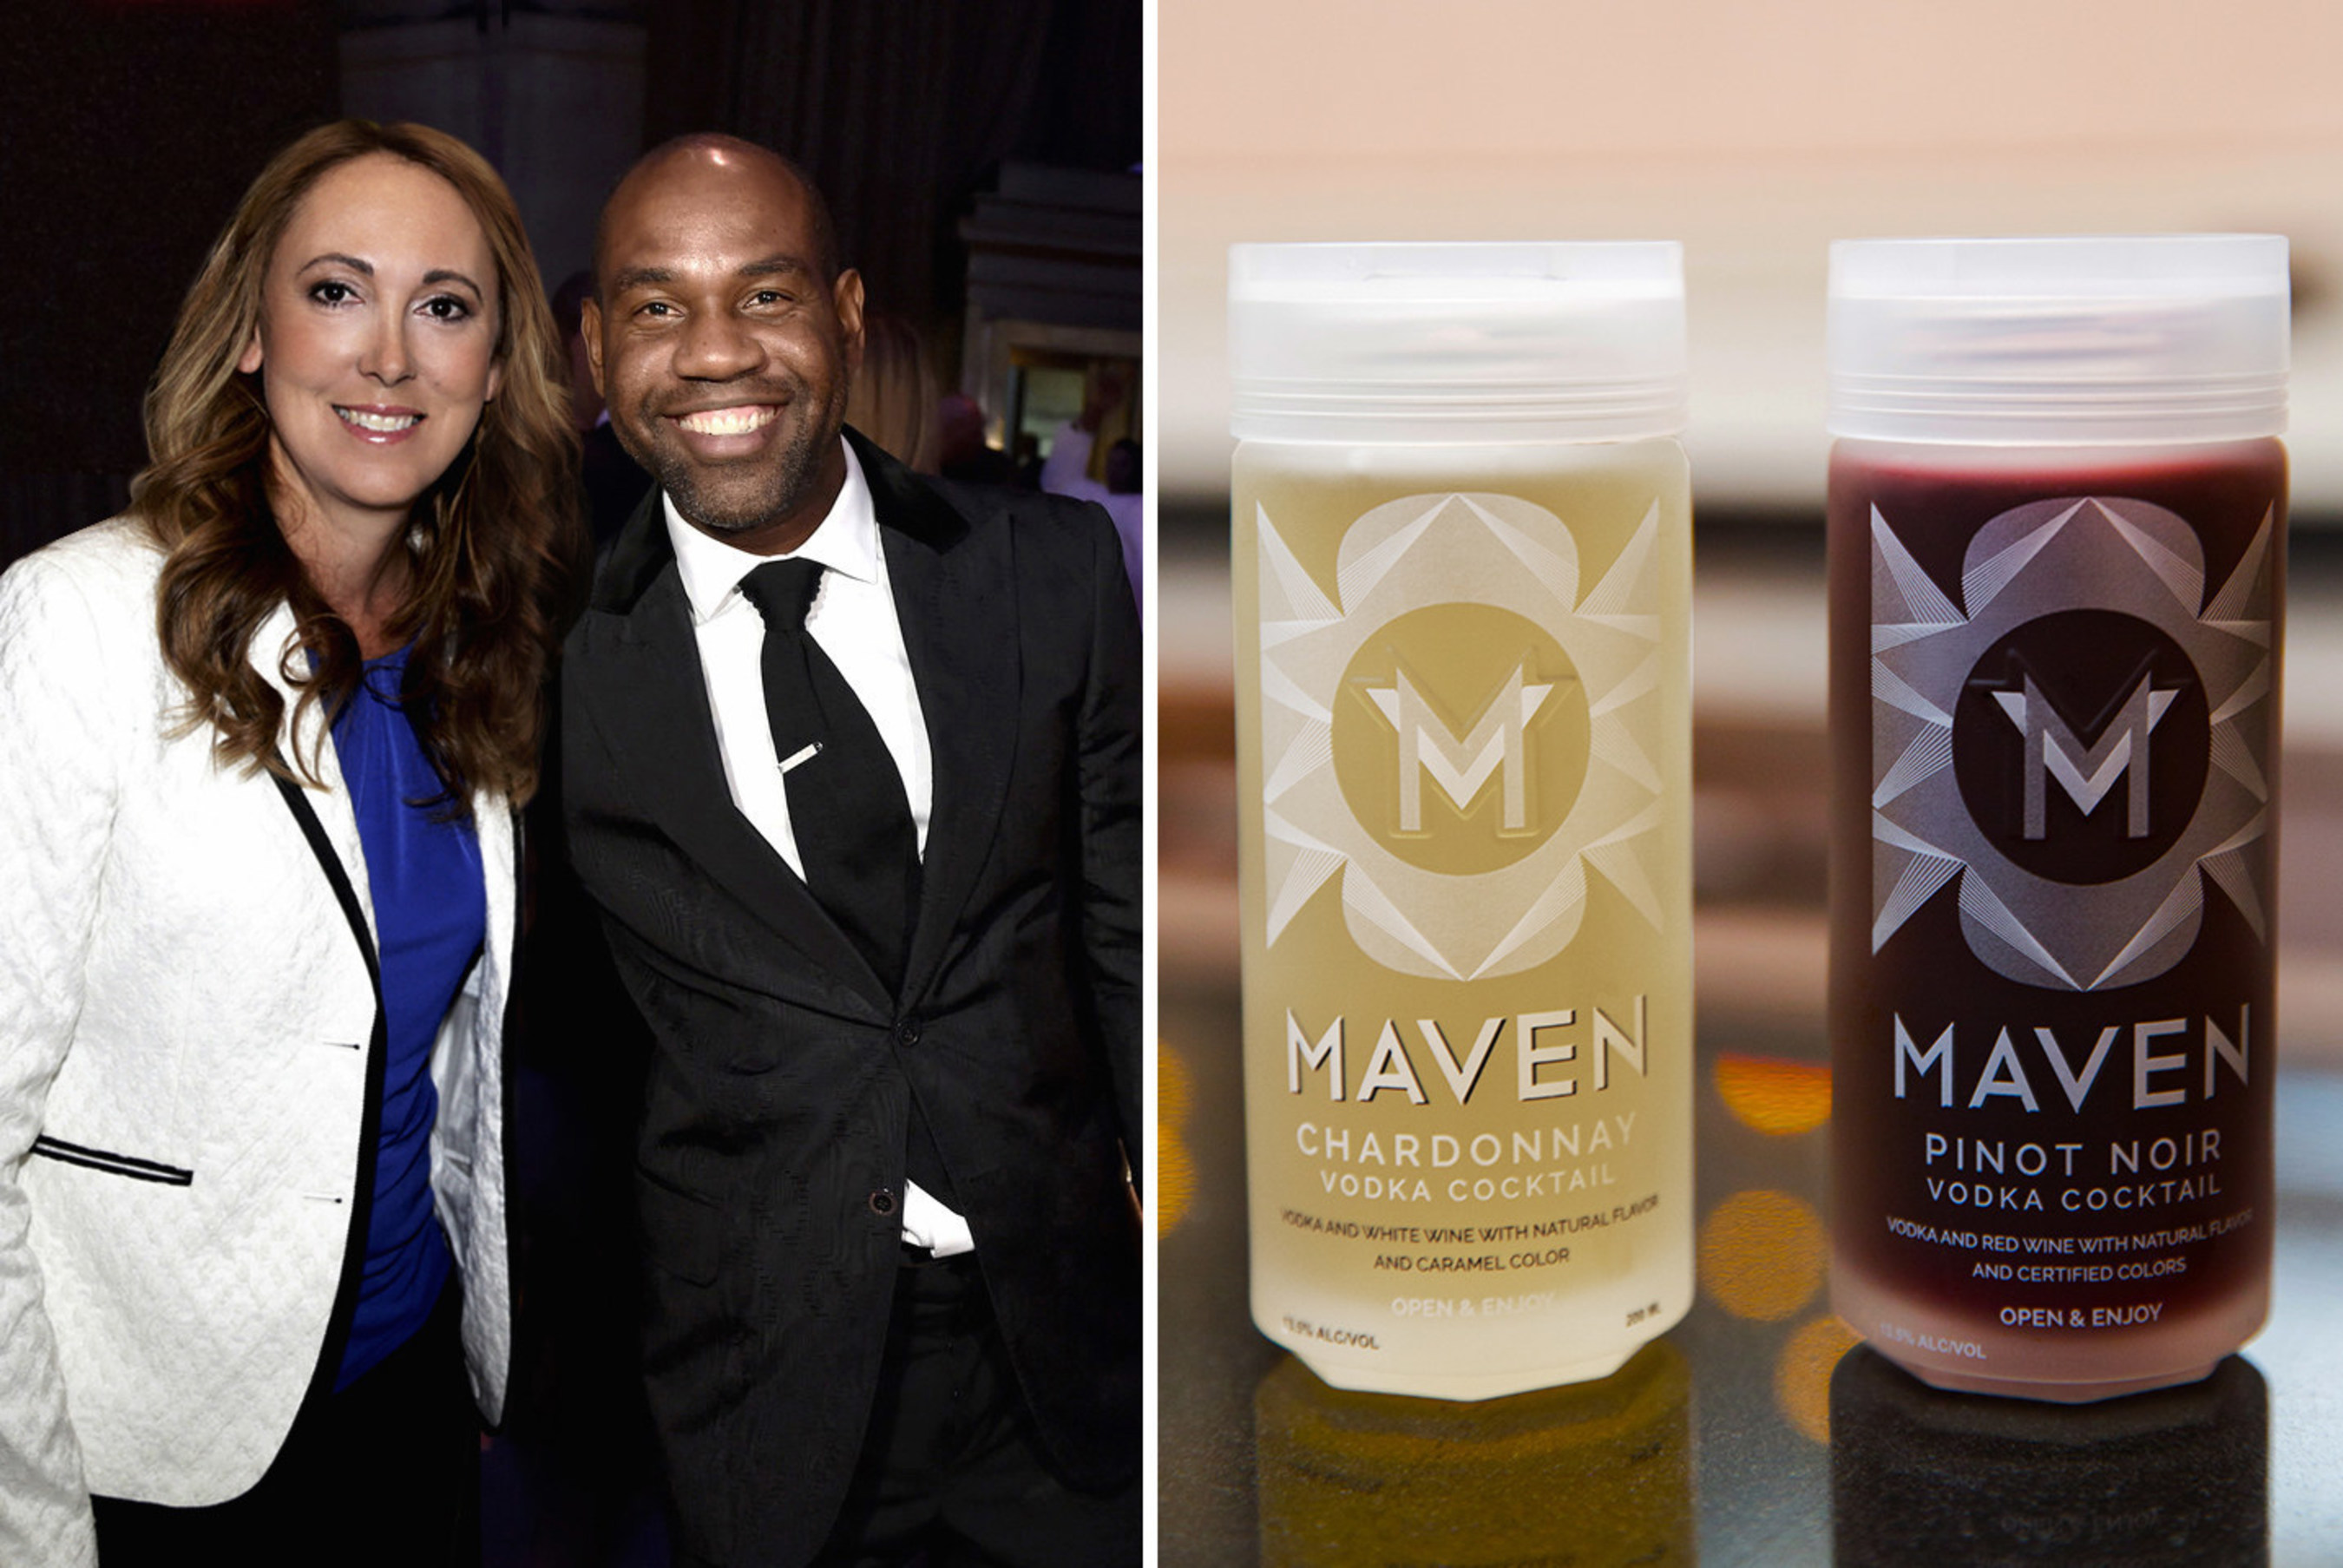 Maven Cocktails Stirs Things Up Through Strategic Alliance